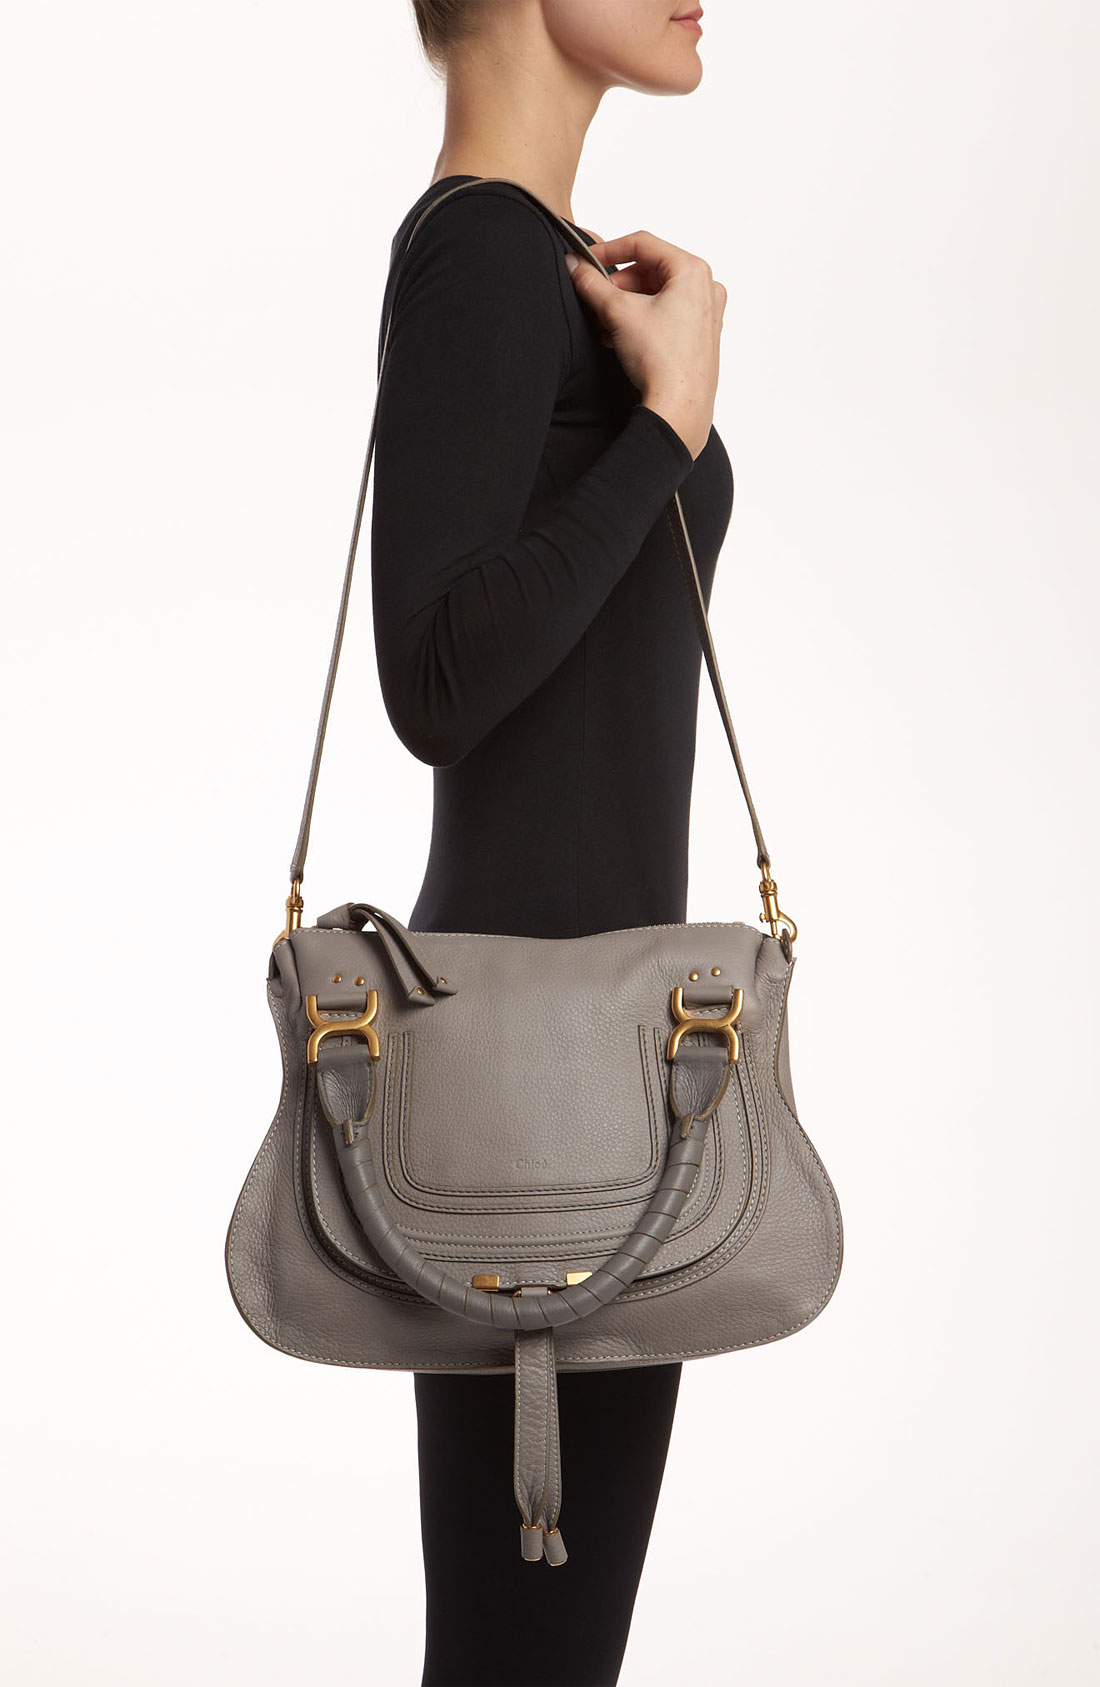 where to buy chloe bags - Chlo�� 'marcie - Small' Leather Satchel in Gray (Cashmere Grey) | Lyst